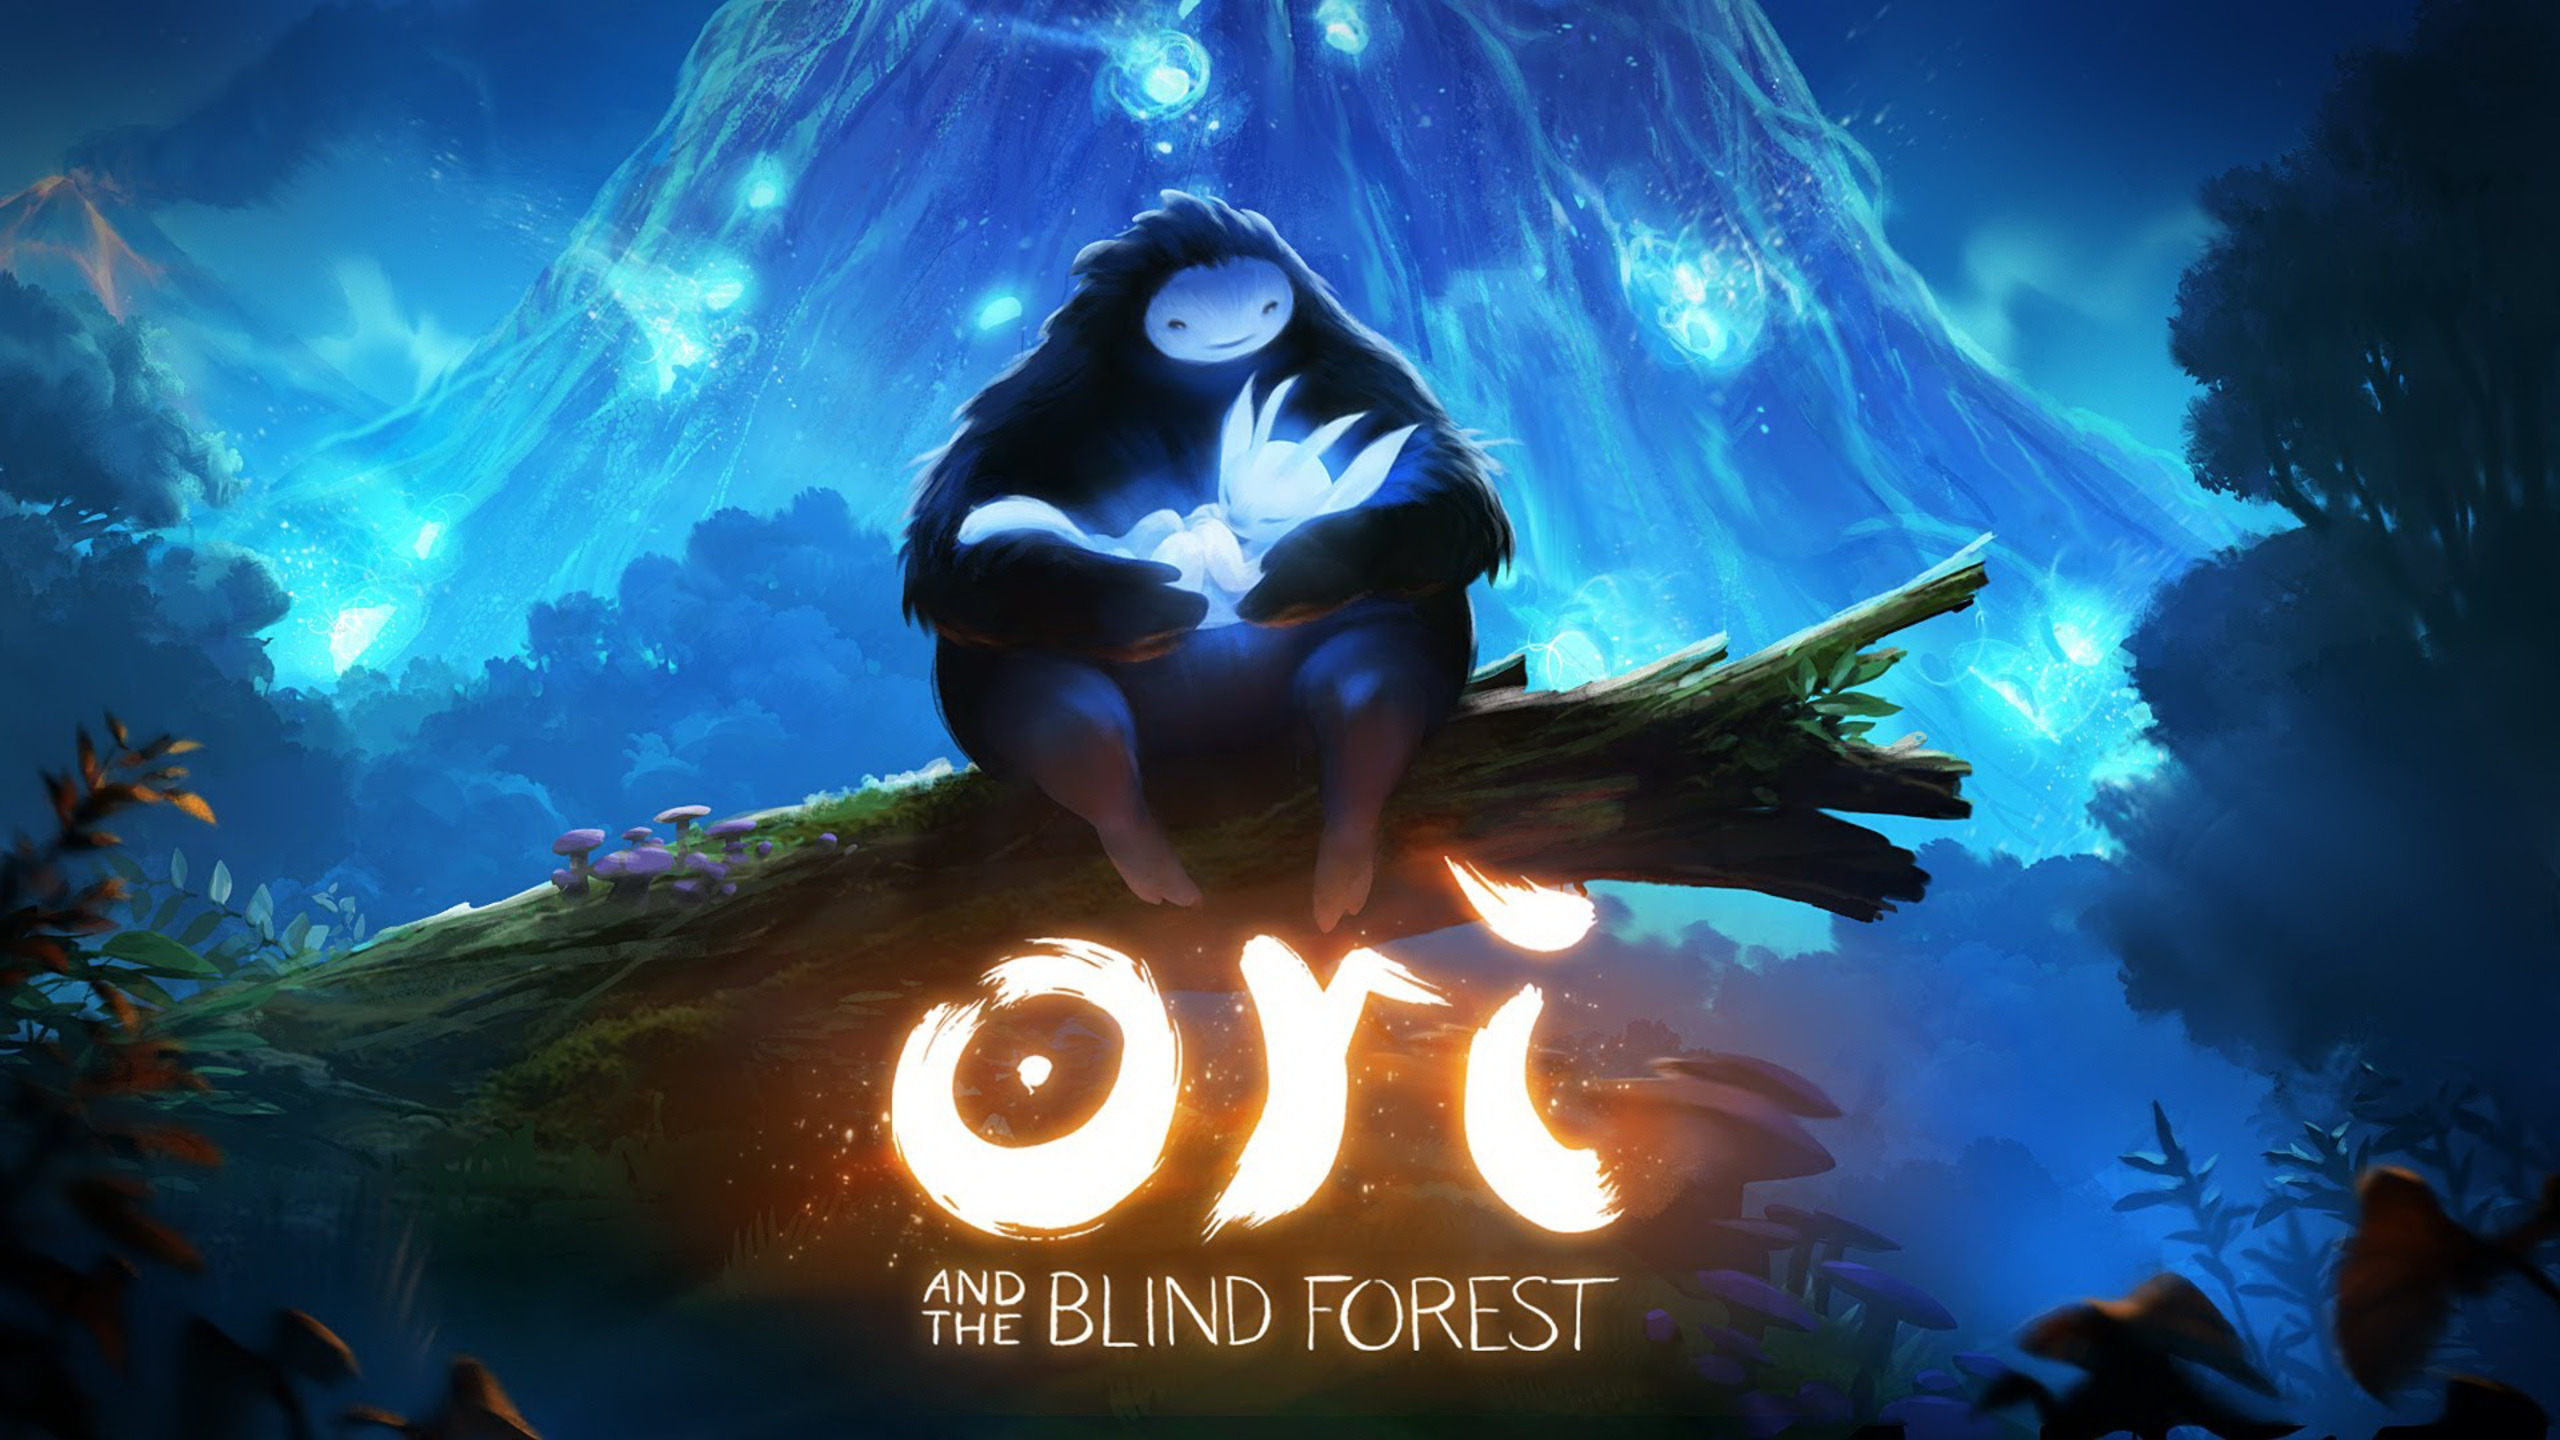 2560x1440 ori and the blind forest 1440p resolution hd 4k wallpapers